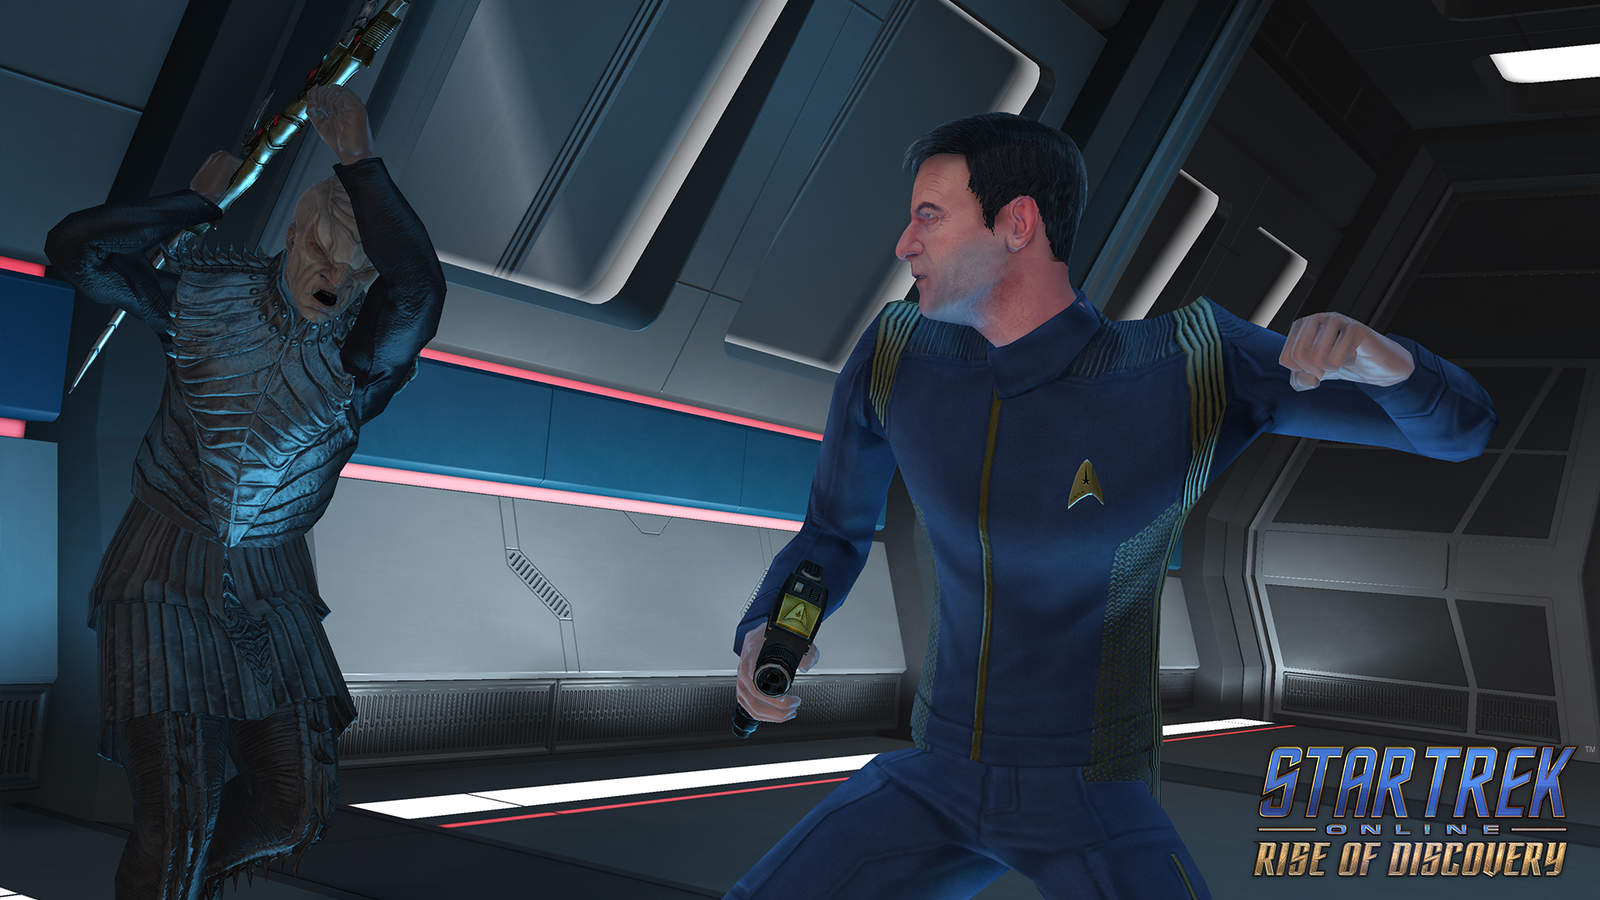 Illustration for article titled Captain Lorca Returns (for the First Time) in This Exclusive iStar Trek Online/i Trailer